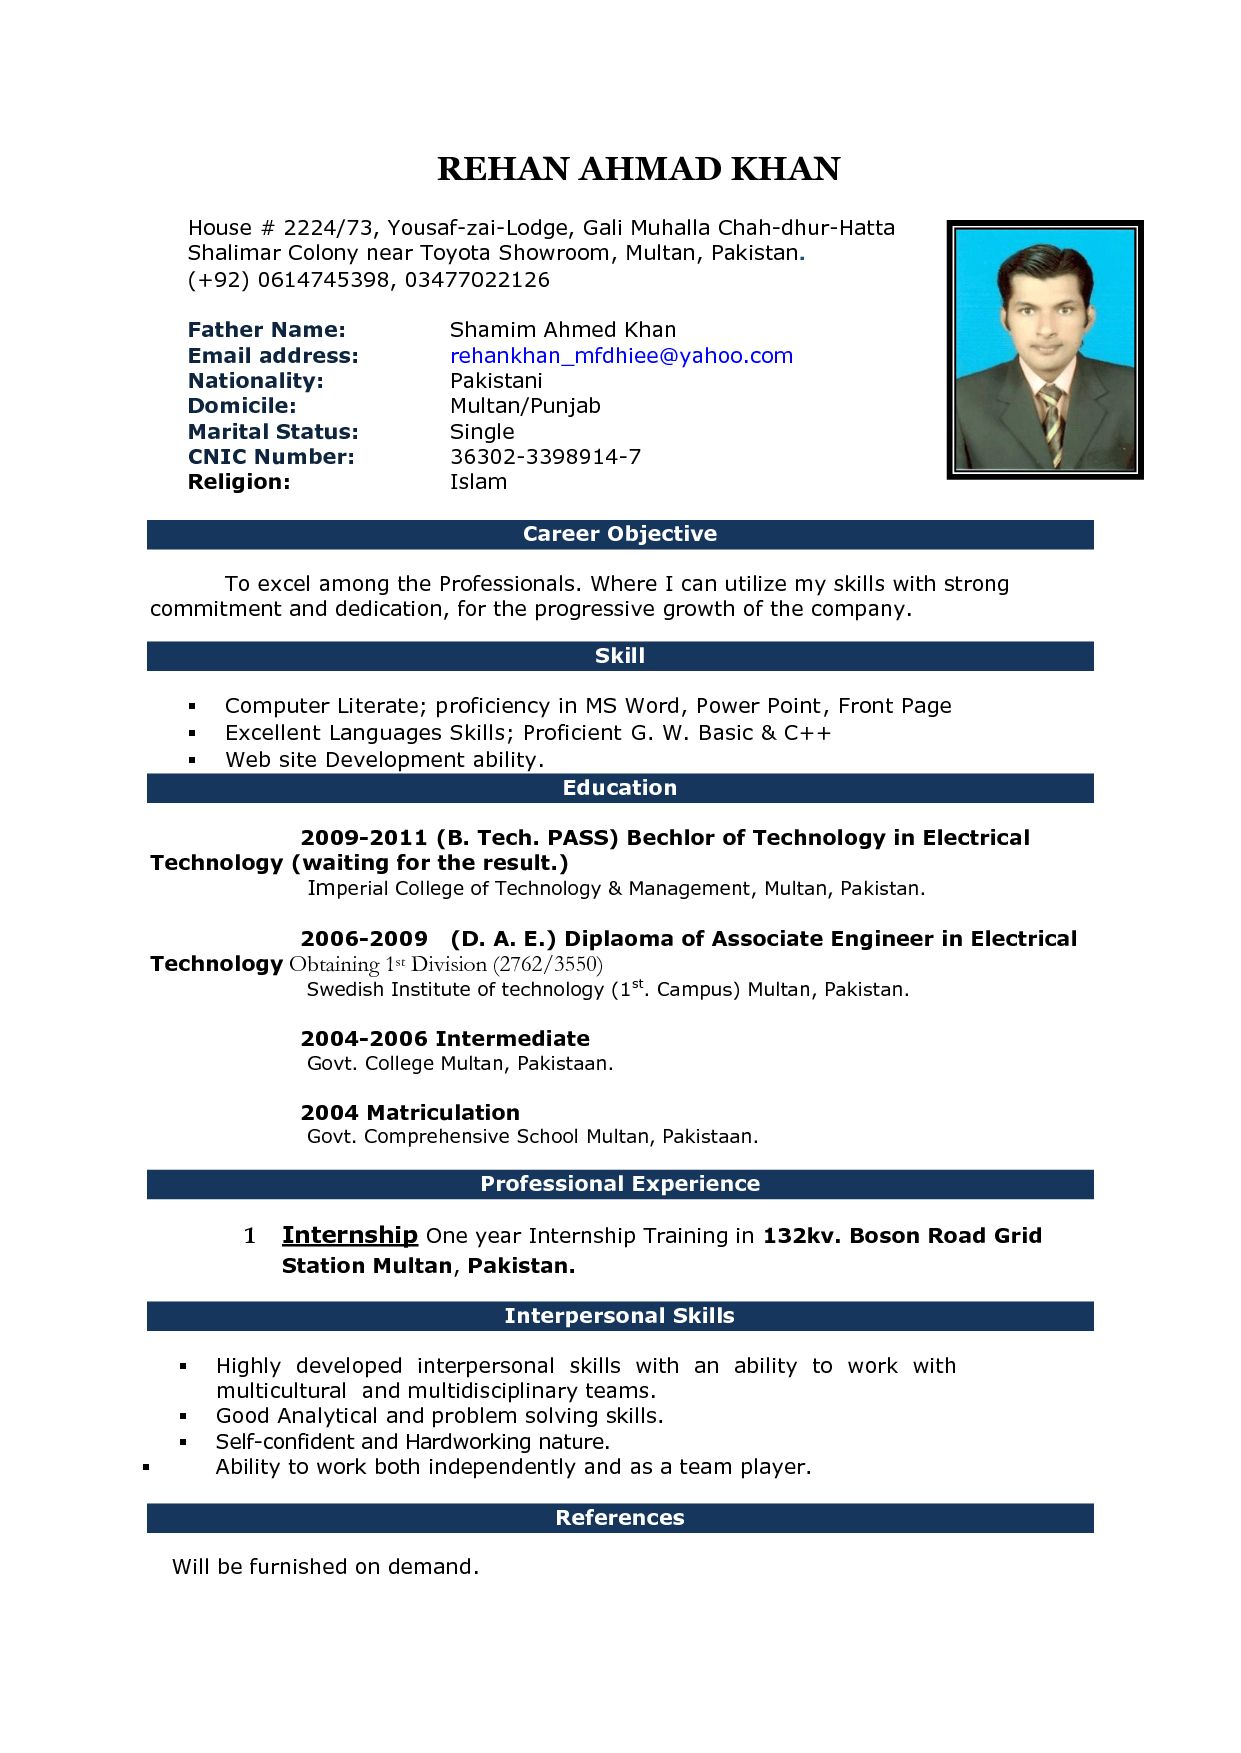 free download cv format in ms word fieldstationco microsoft office resume templates free download